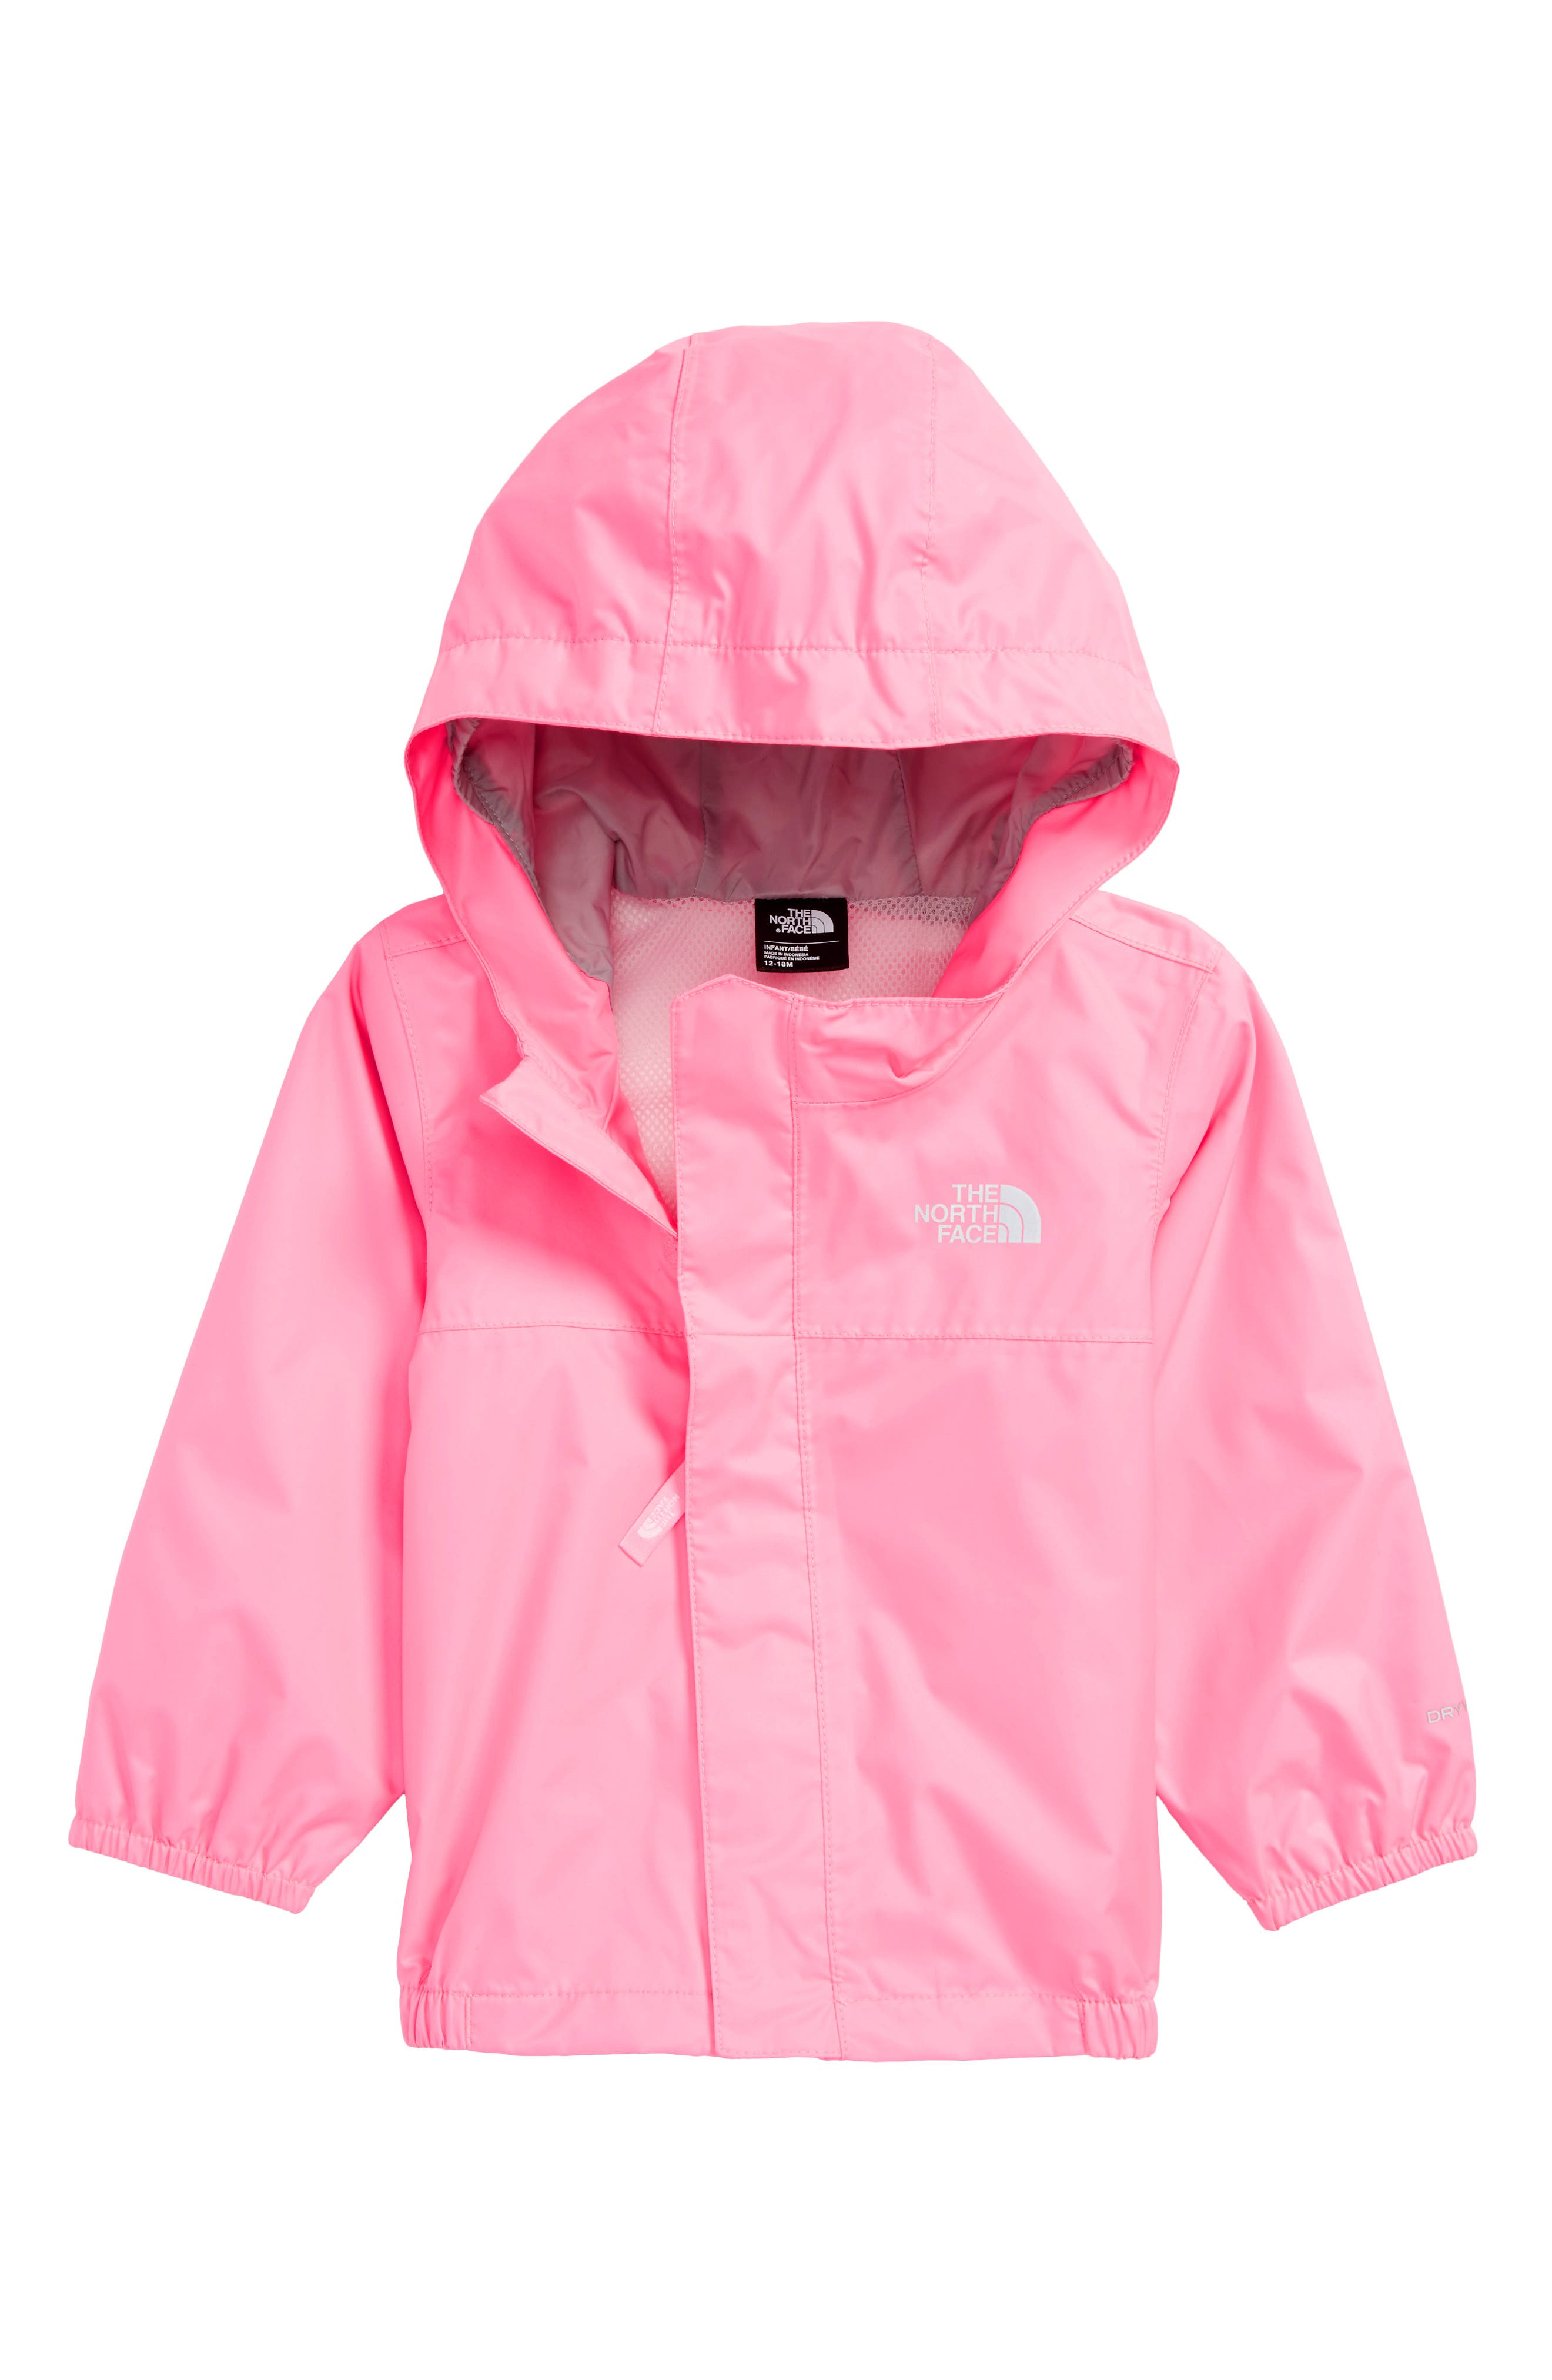 Tailout Hooded Rain Jacket,                         Main,                         color, Gem Pink